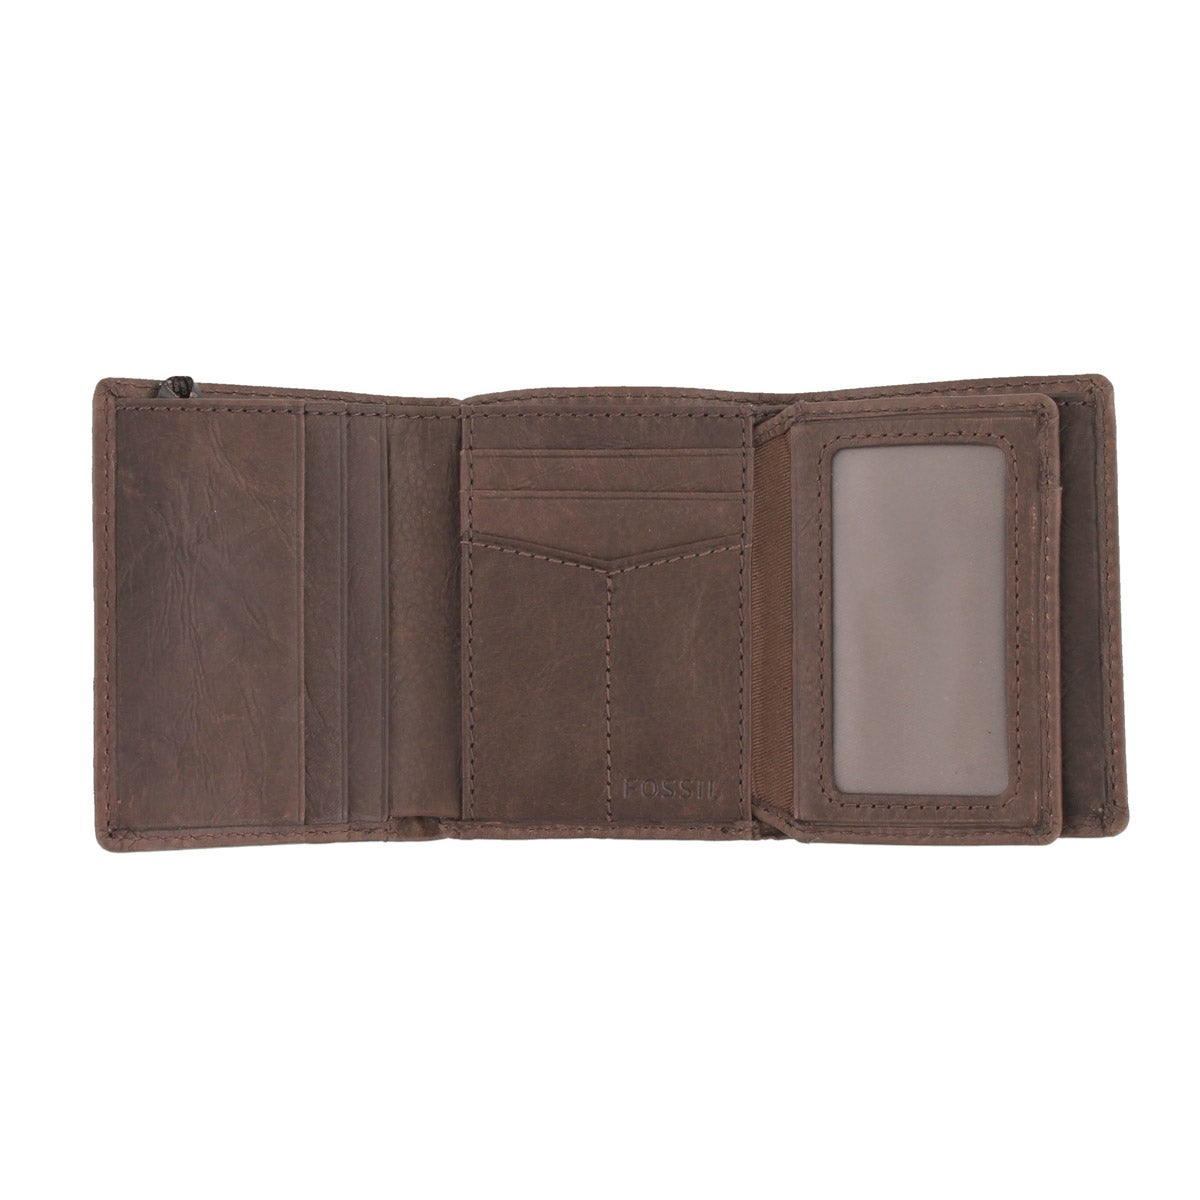 Mns Ingram Trifold brown leather wallet